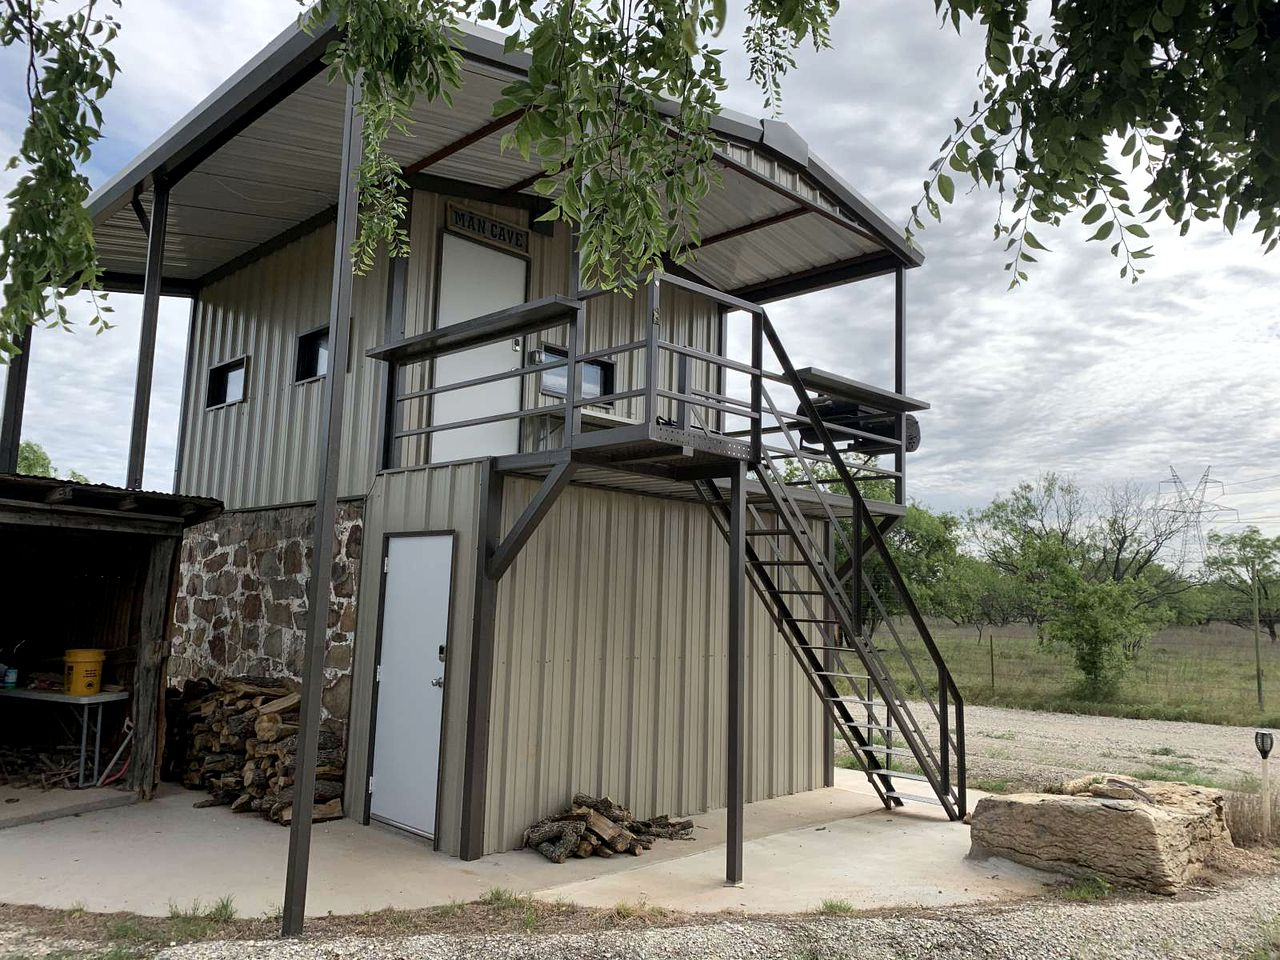 Go glamping in Texas at this cabin rental!